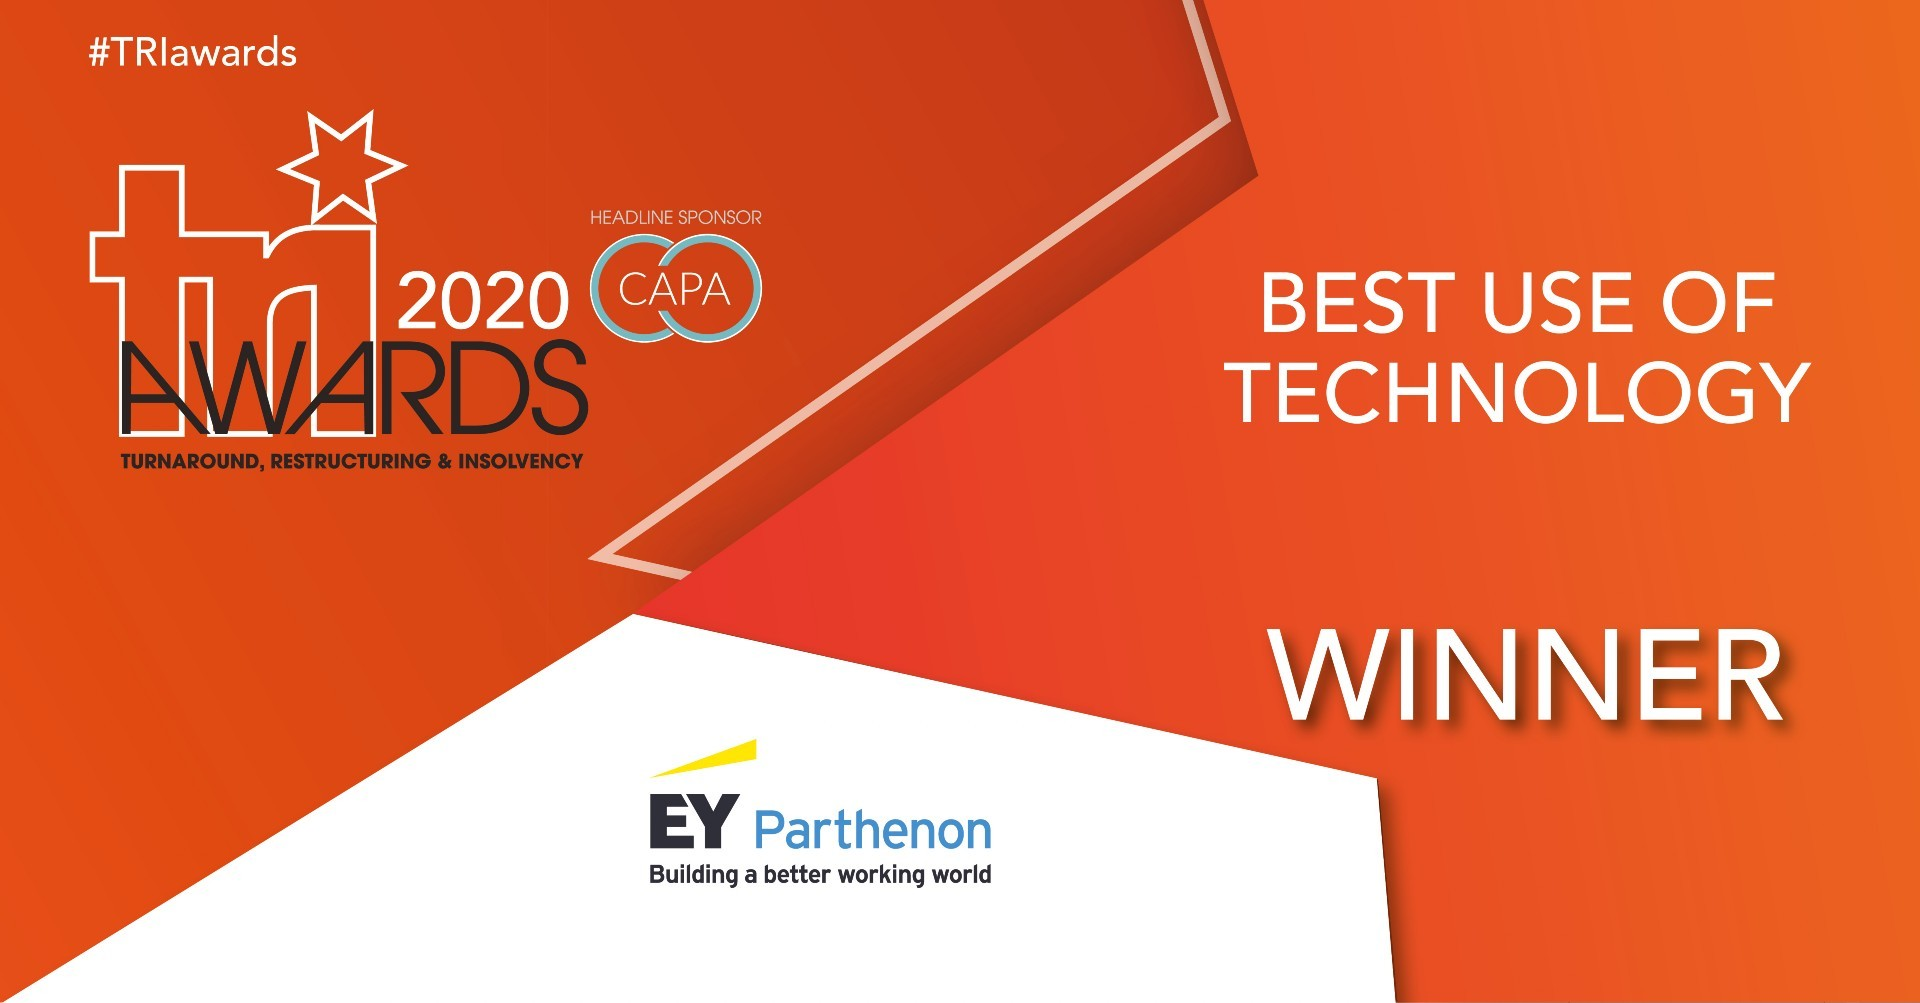 Image for 2020 TRI Awards - Best use of Technology